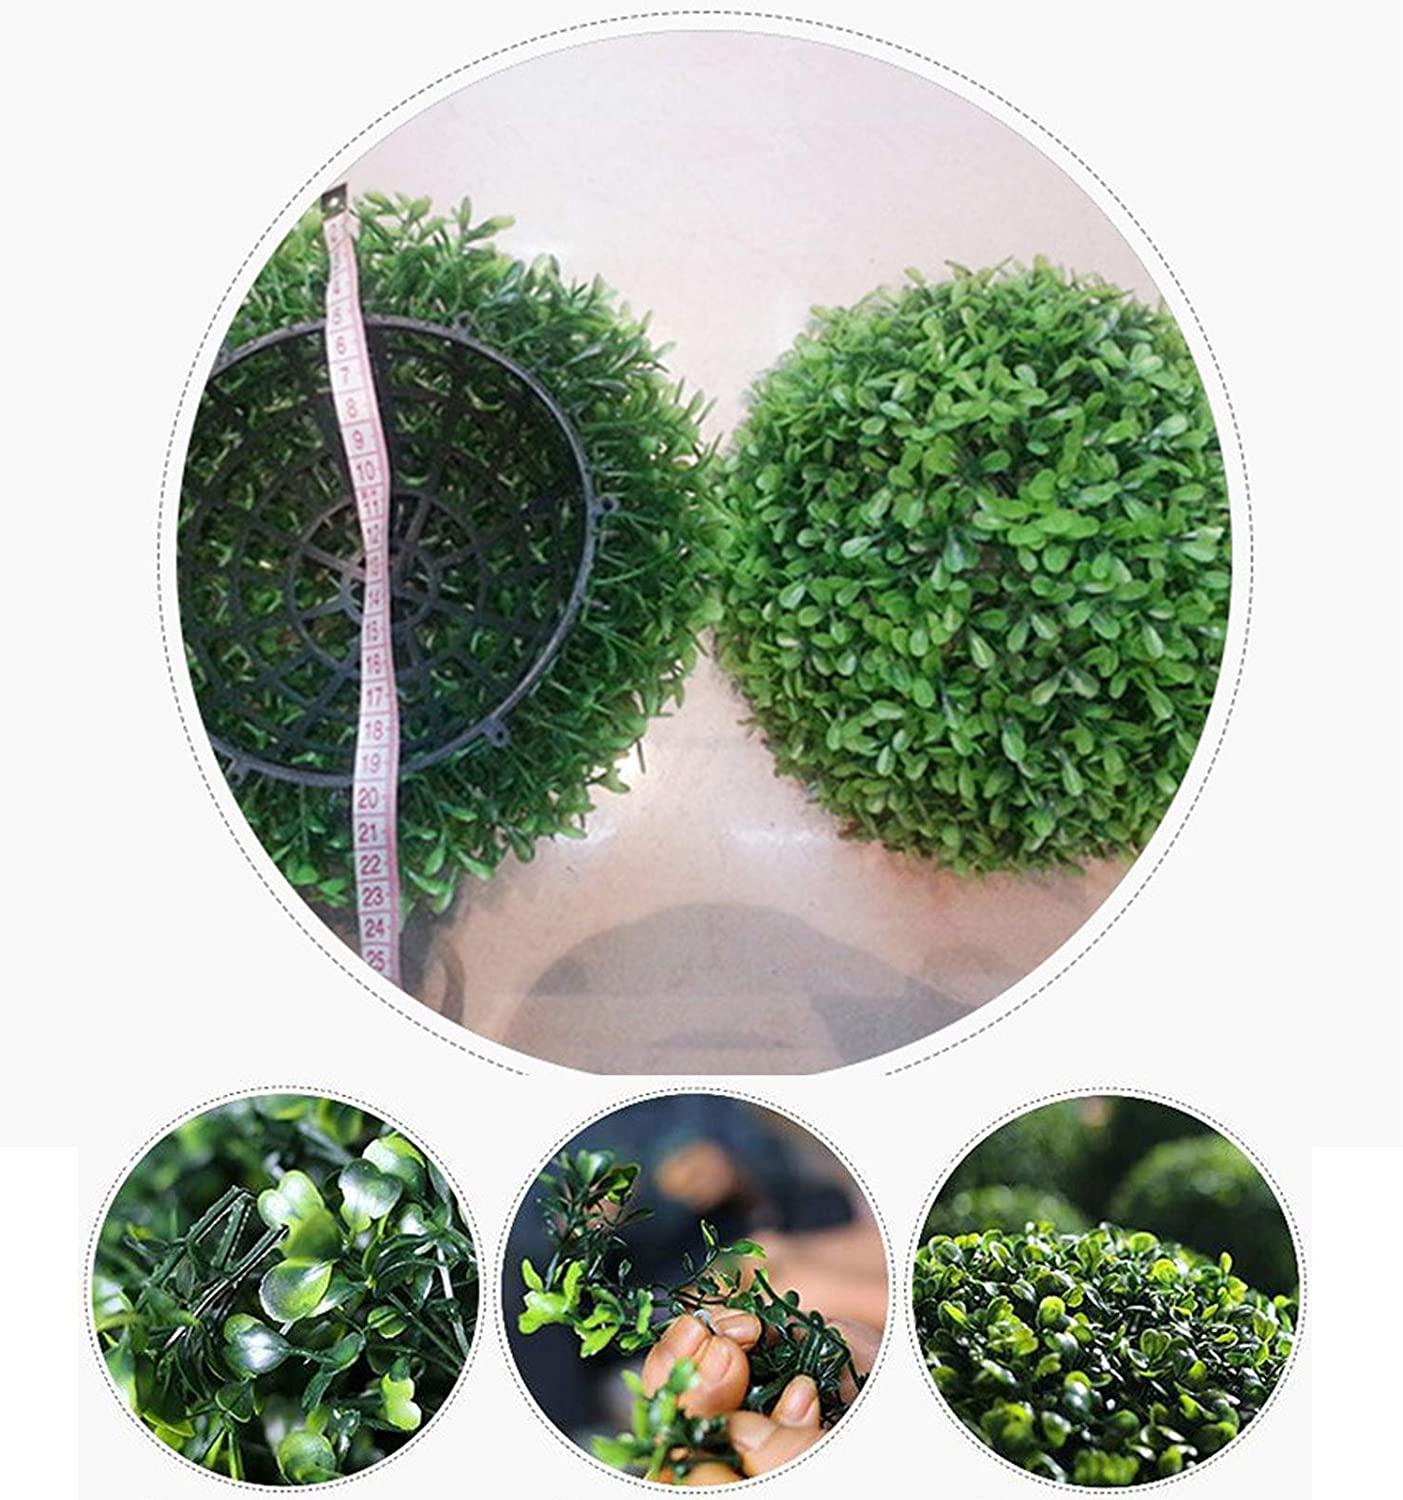 LAHappy Artificial Plants Grass Ball Hanging Simulation Peanut Grass Ball Outdoor And Indoor Topiary Ball Leaf Effect Ball UV Protected Green Boxwood Buxus Grass Topiary Hanging Balls,20cm